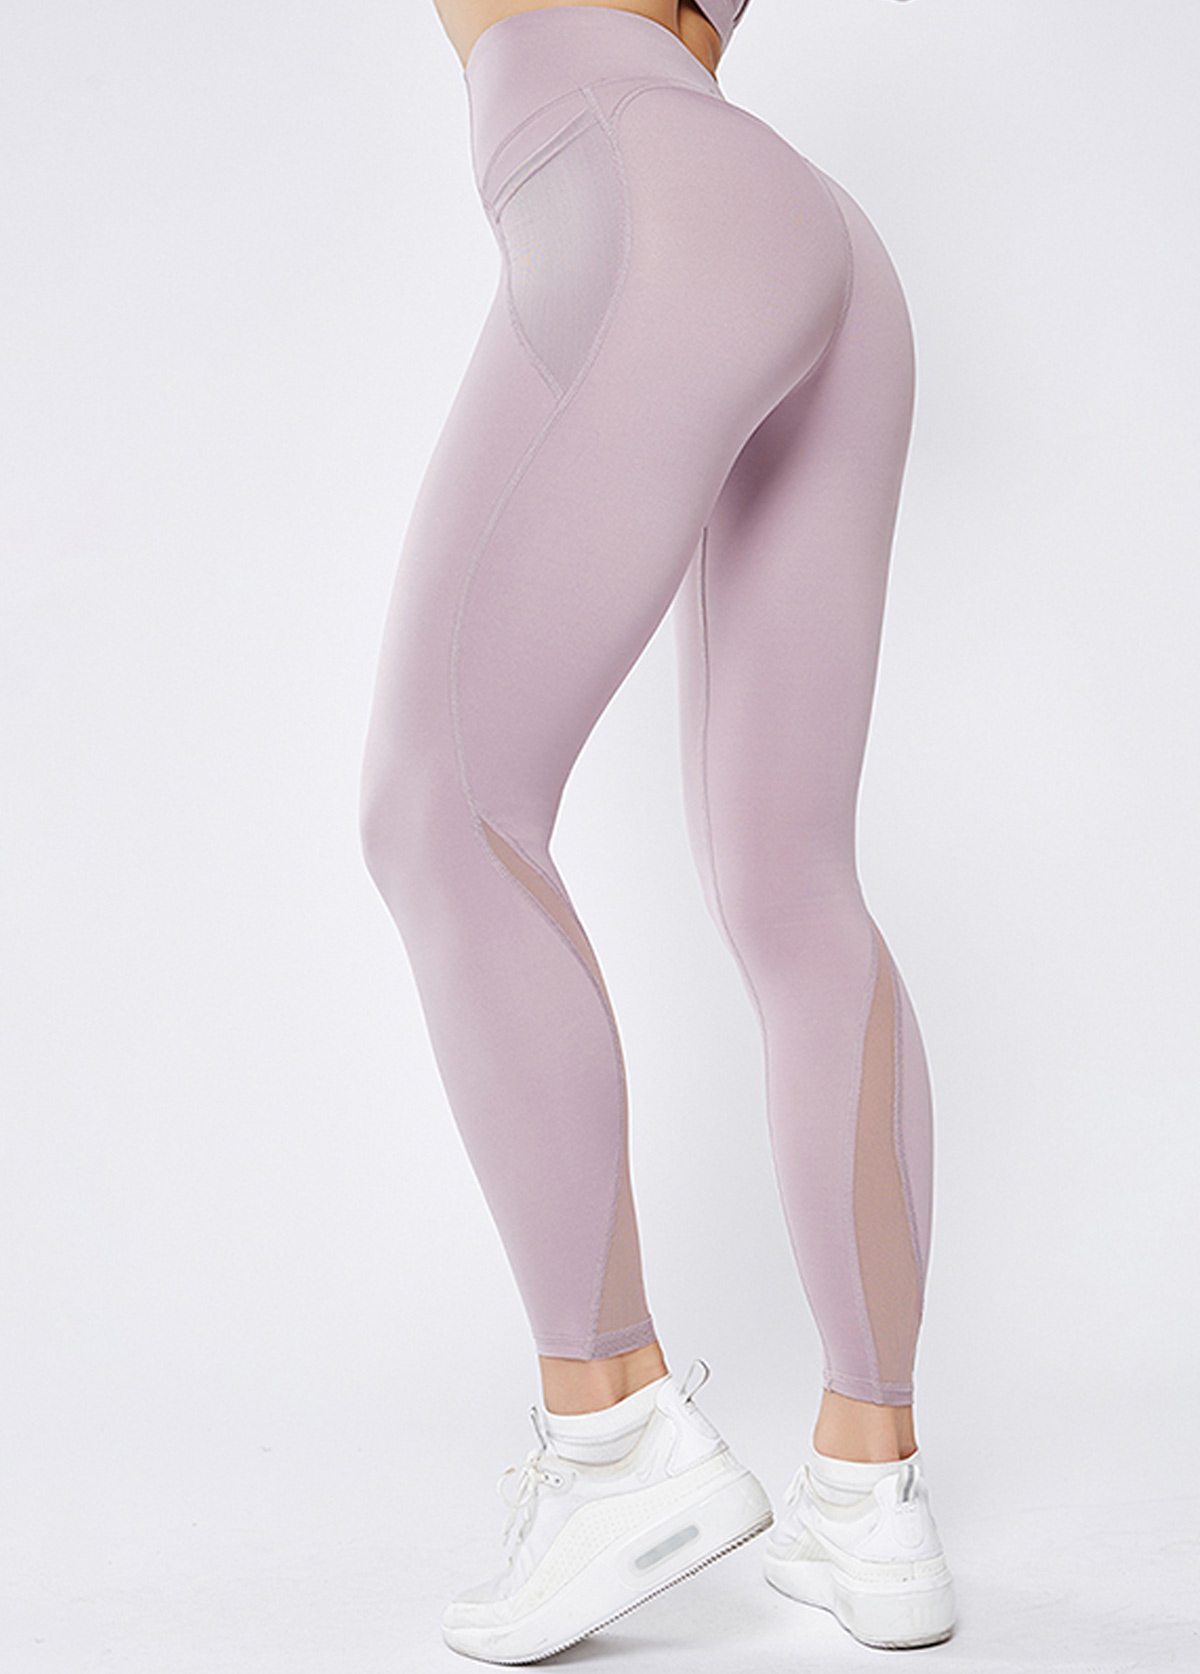 Mesh Panel Light Purple High Waist Elastic Yoga Leggings With Pockets